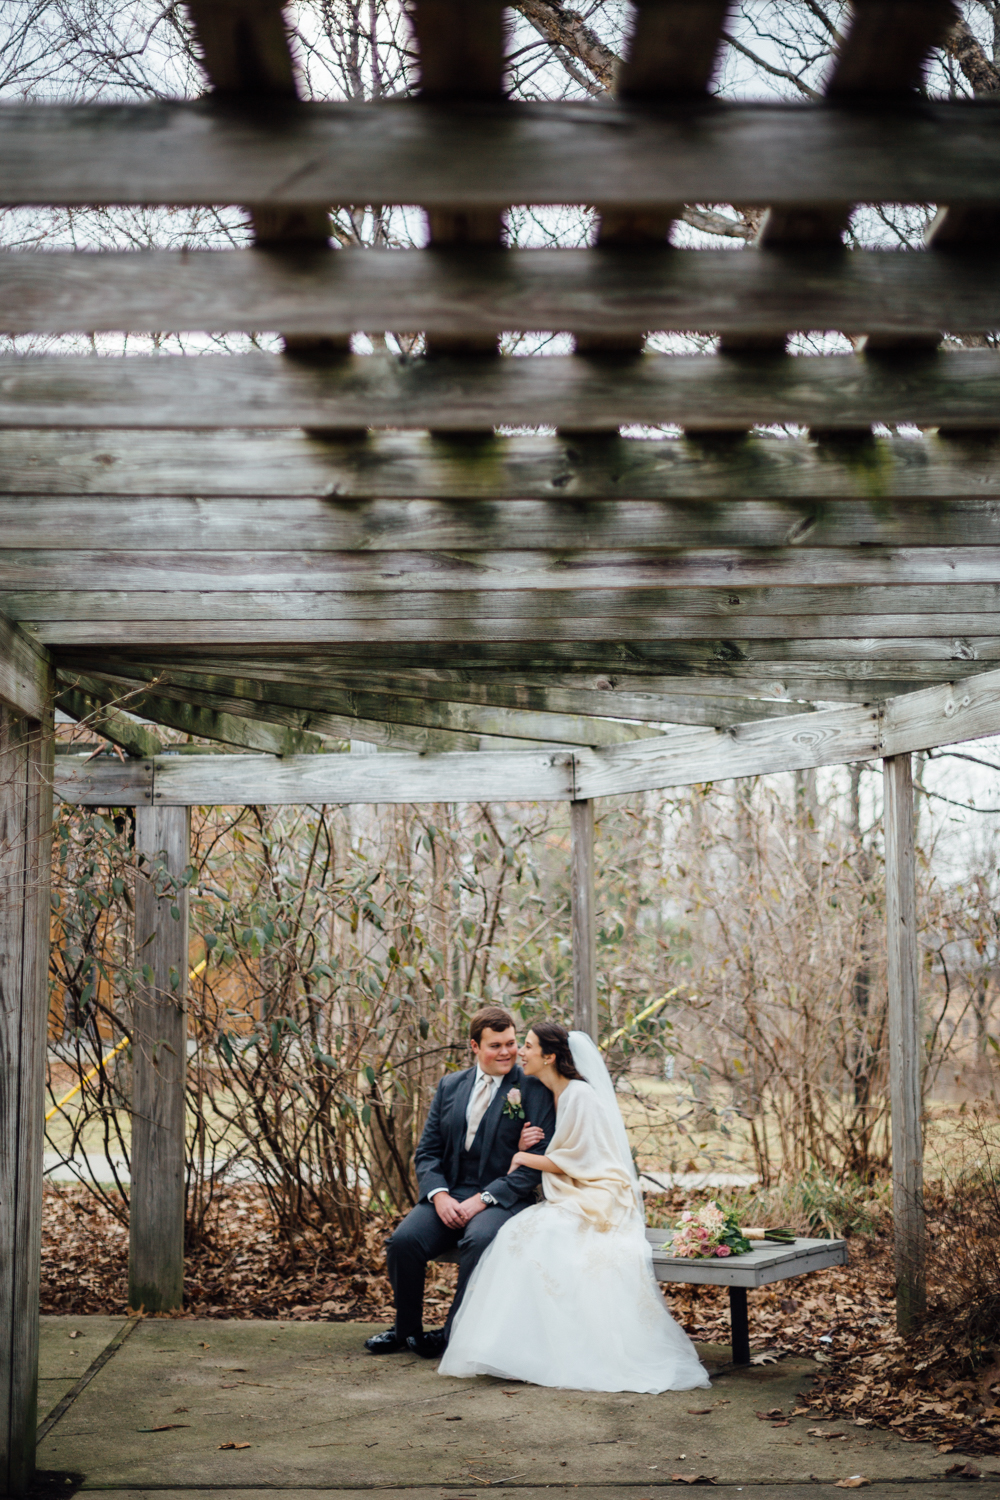 Fun, Intimate Spring Wedding by Corrie Mick Photography-57.jpg